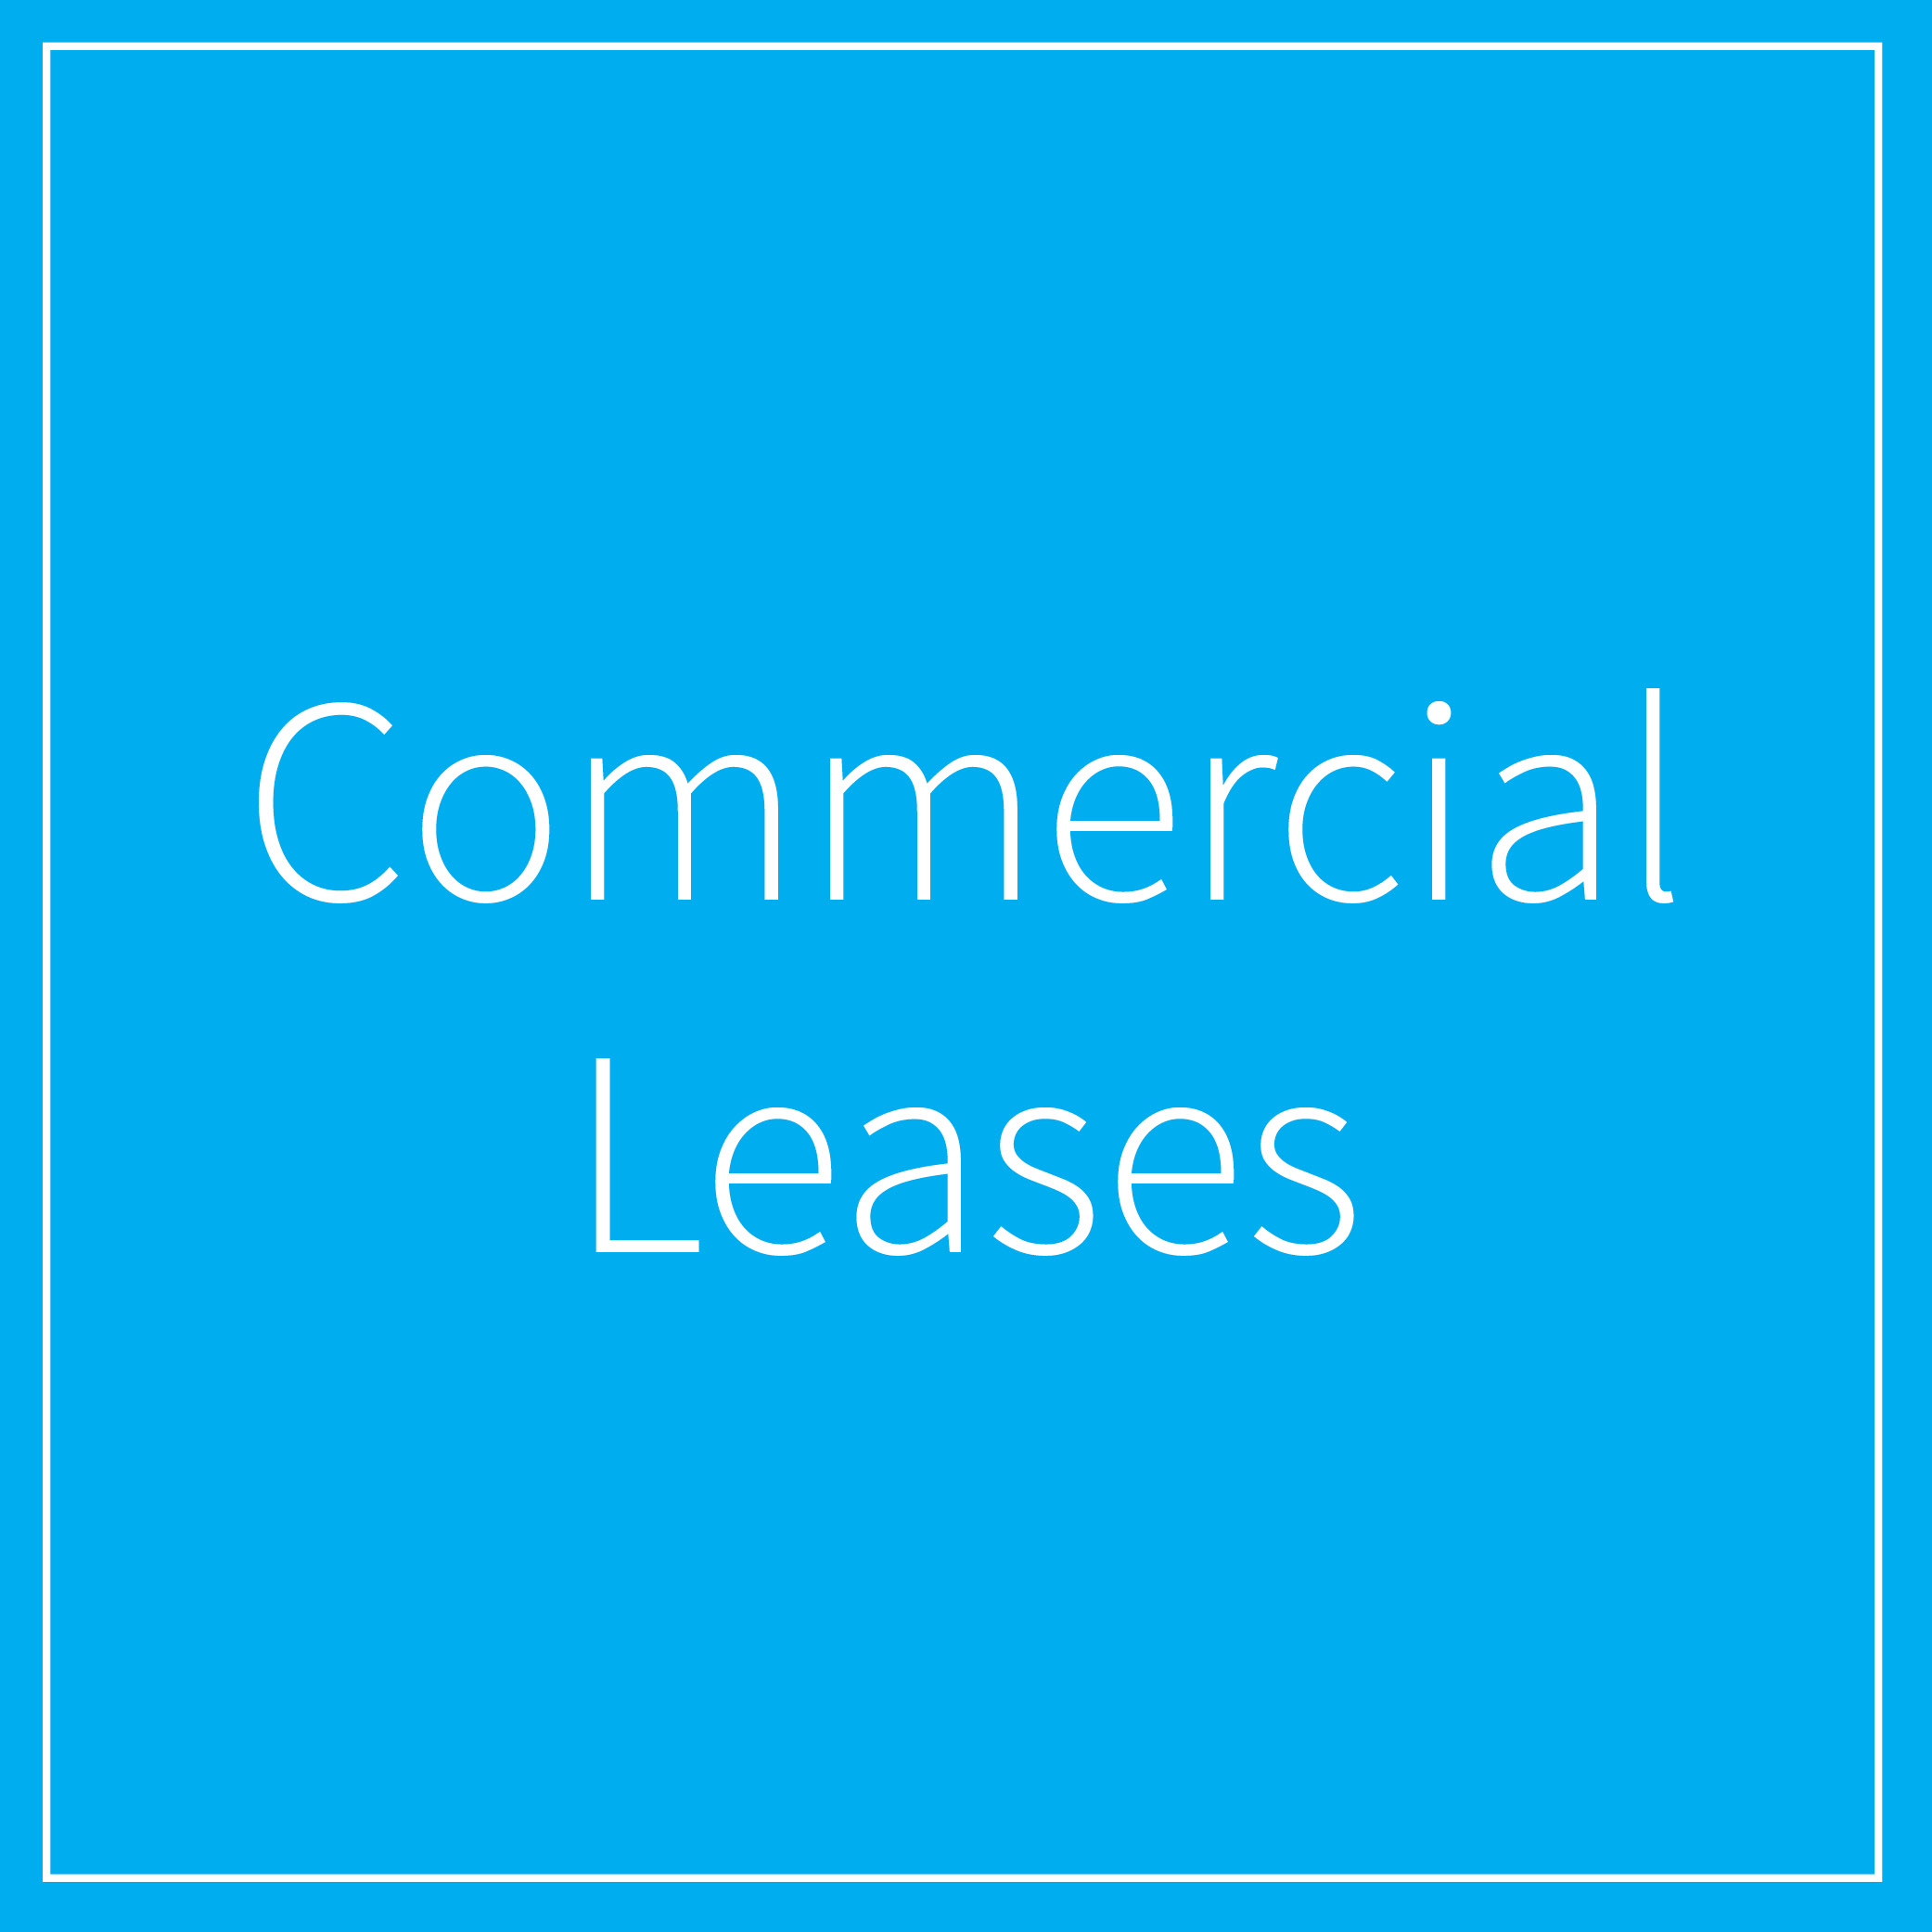 Commercial Leases.jpg